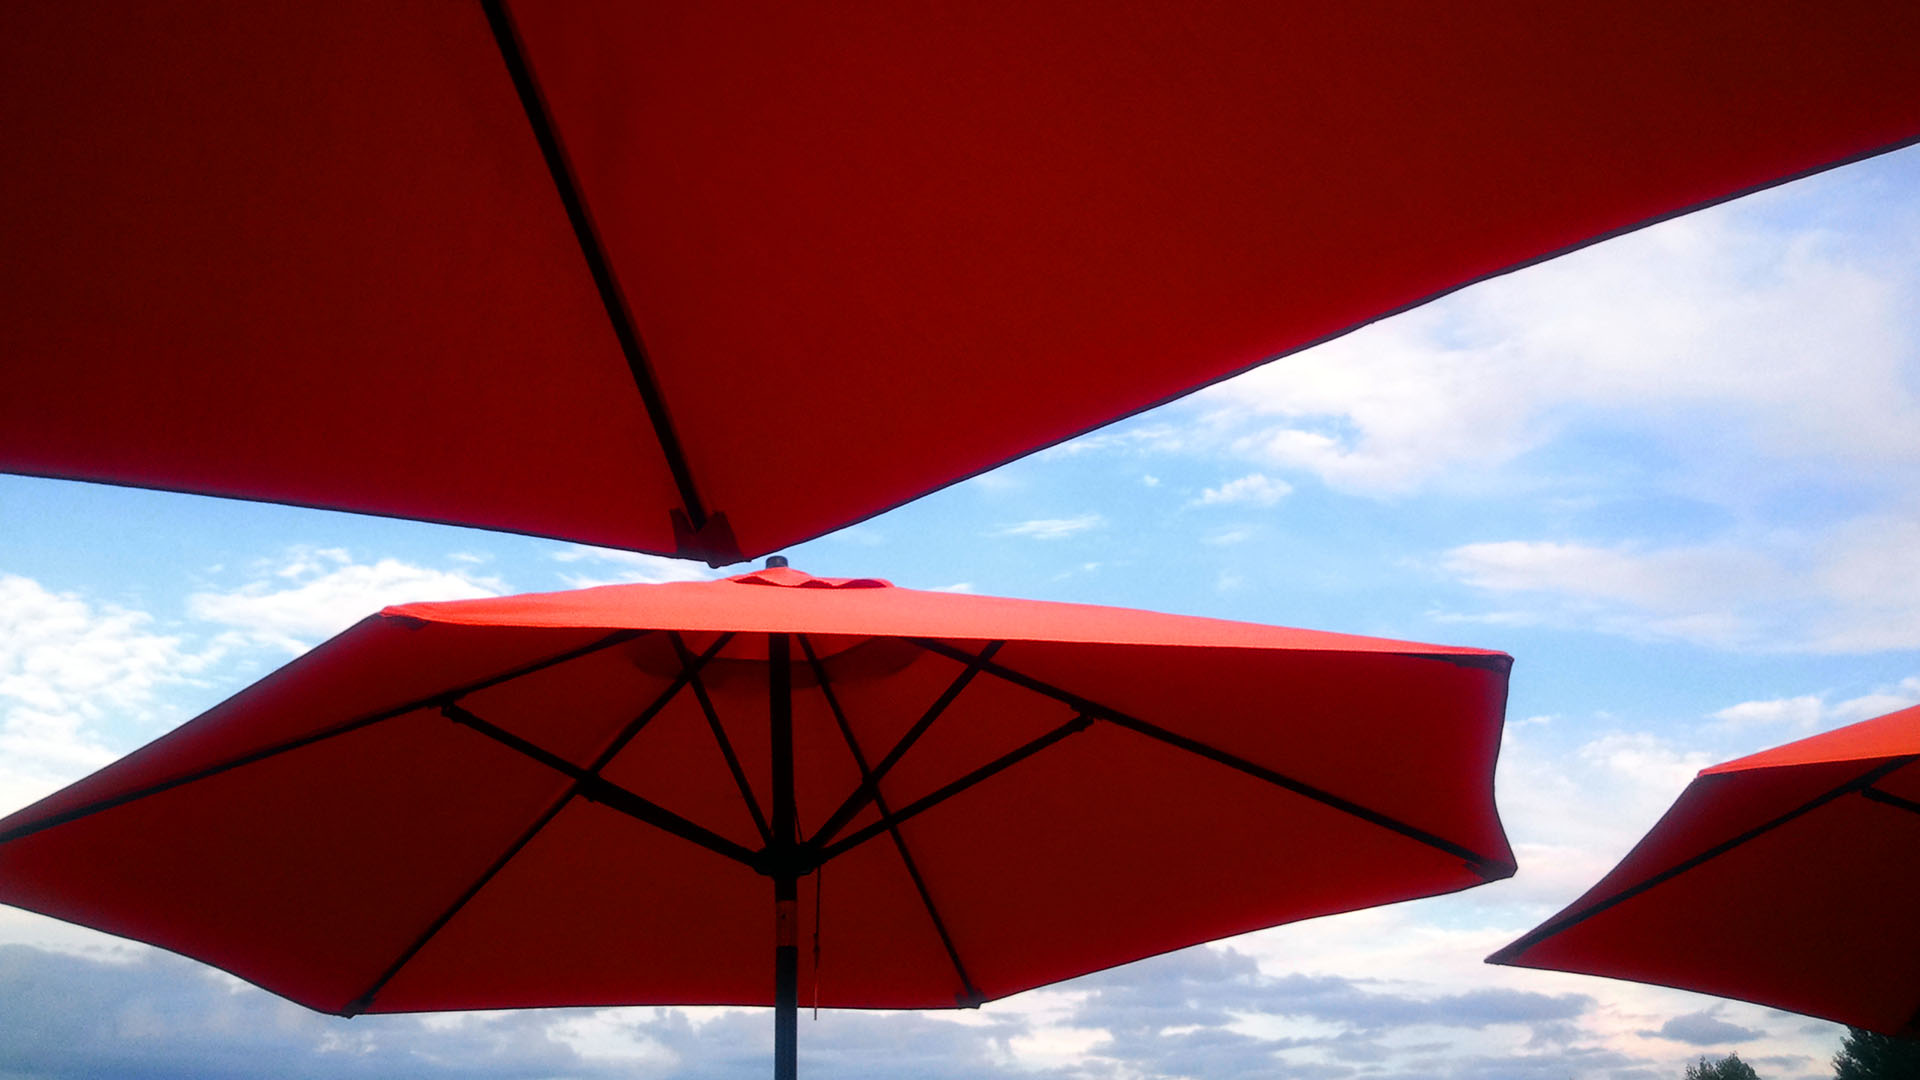 Orange Umbrellas, Campbell River BC